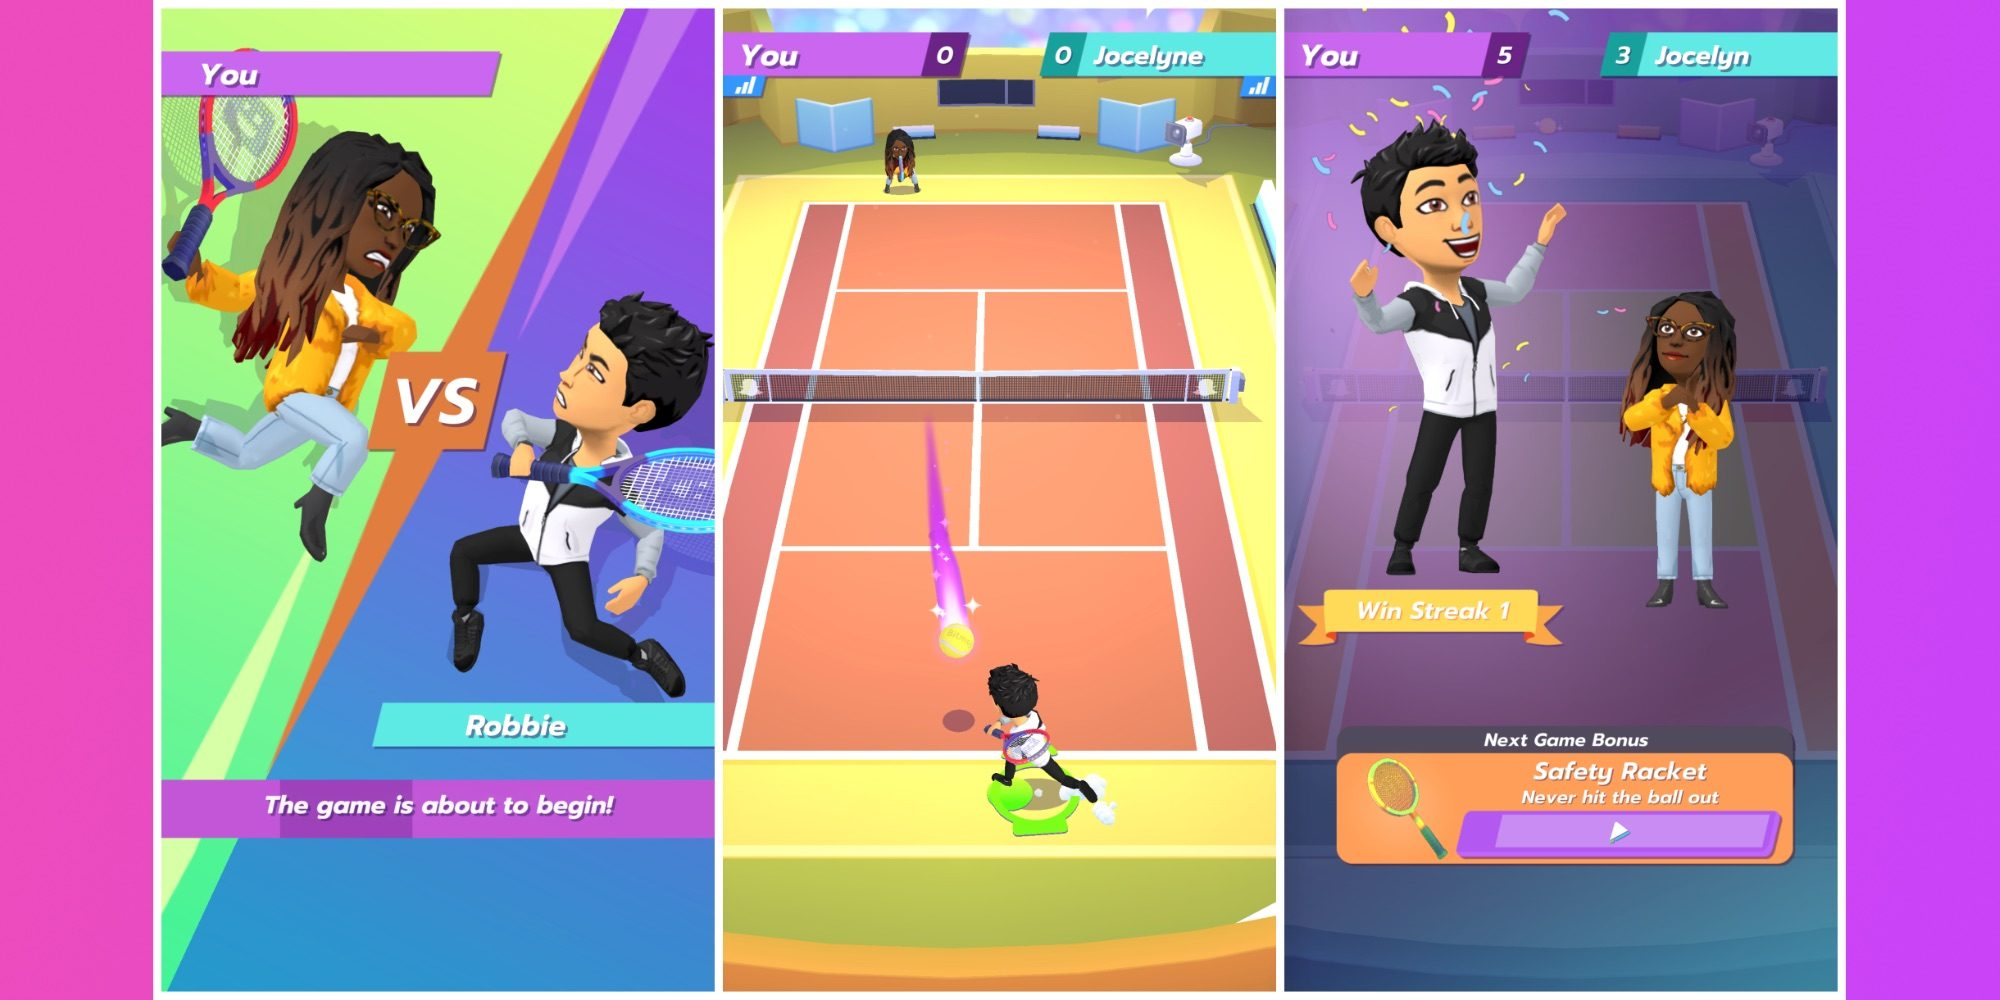 Multiplayer Games Snapchat Tennis' Snap Title Brings 'bitmoji To 54LAqcj3RS